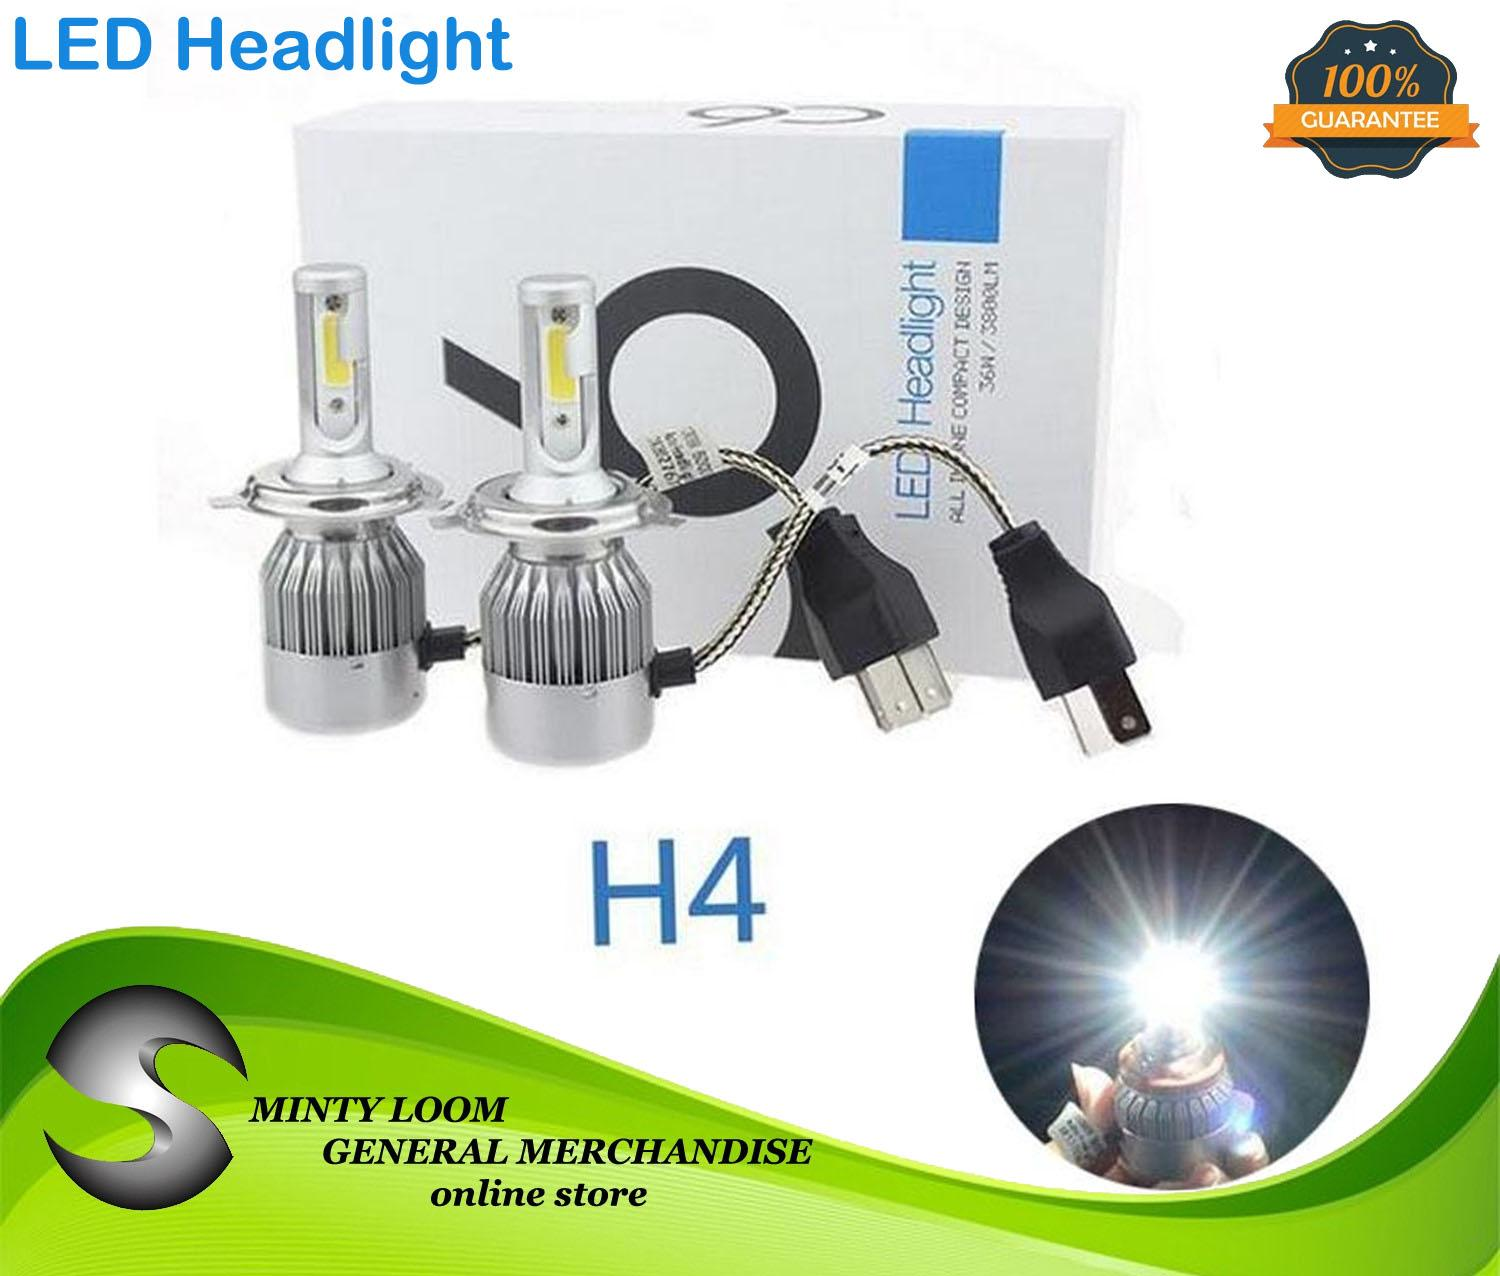 Motorcycle Head Lights For Sale Light Assemblies Online C6 Headlight Wiring Harness New 2pcs Led Car Kit Cob H4 36w 3800lm White Bulbs